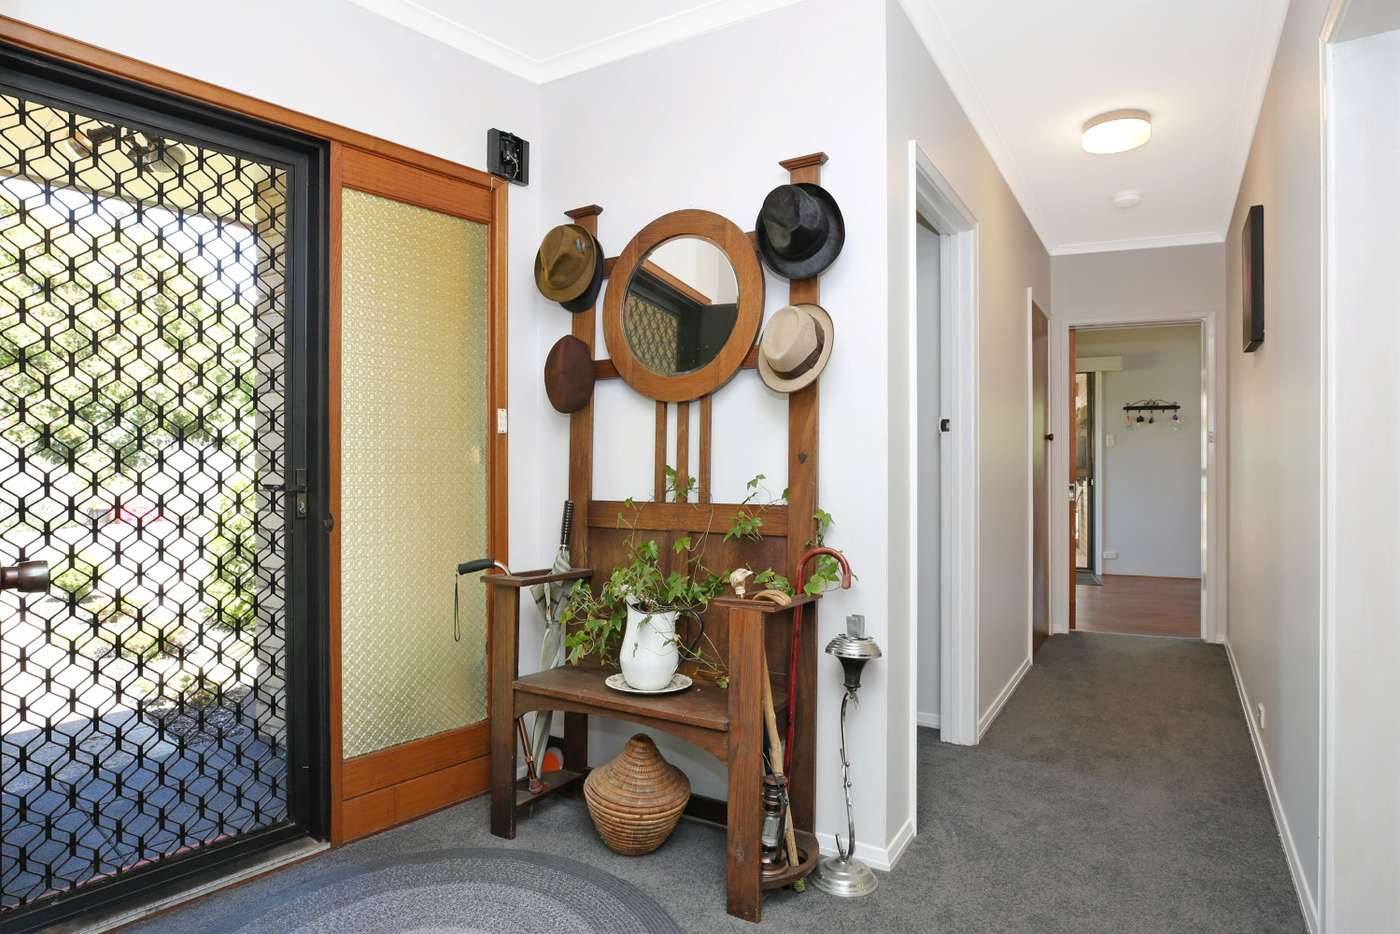 Seventh view of Homely house listing, 16 Park Avenue, Camperdown VIC 3260